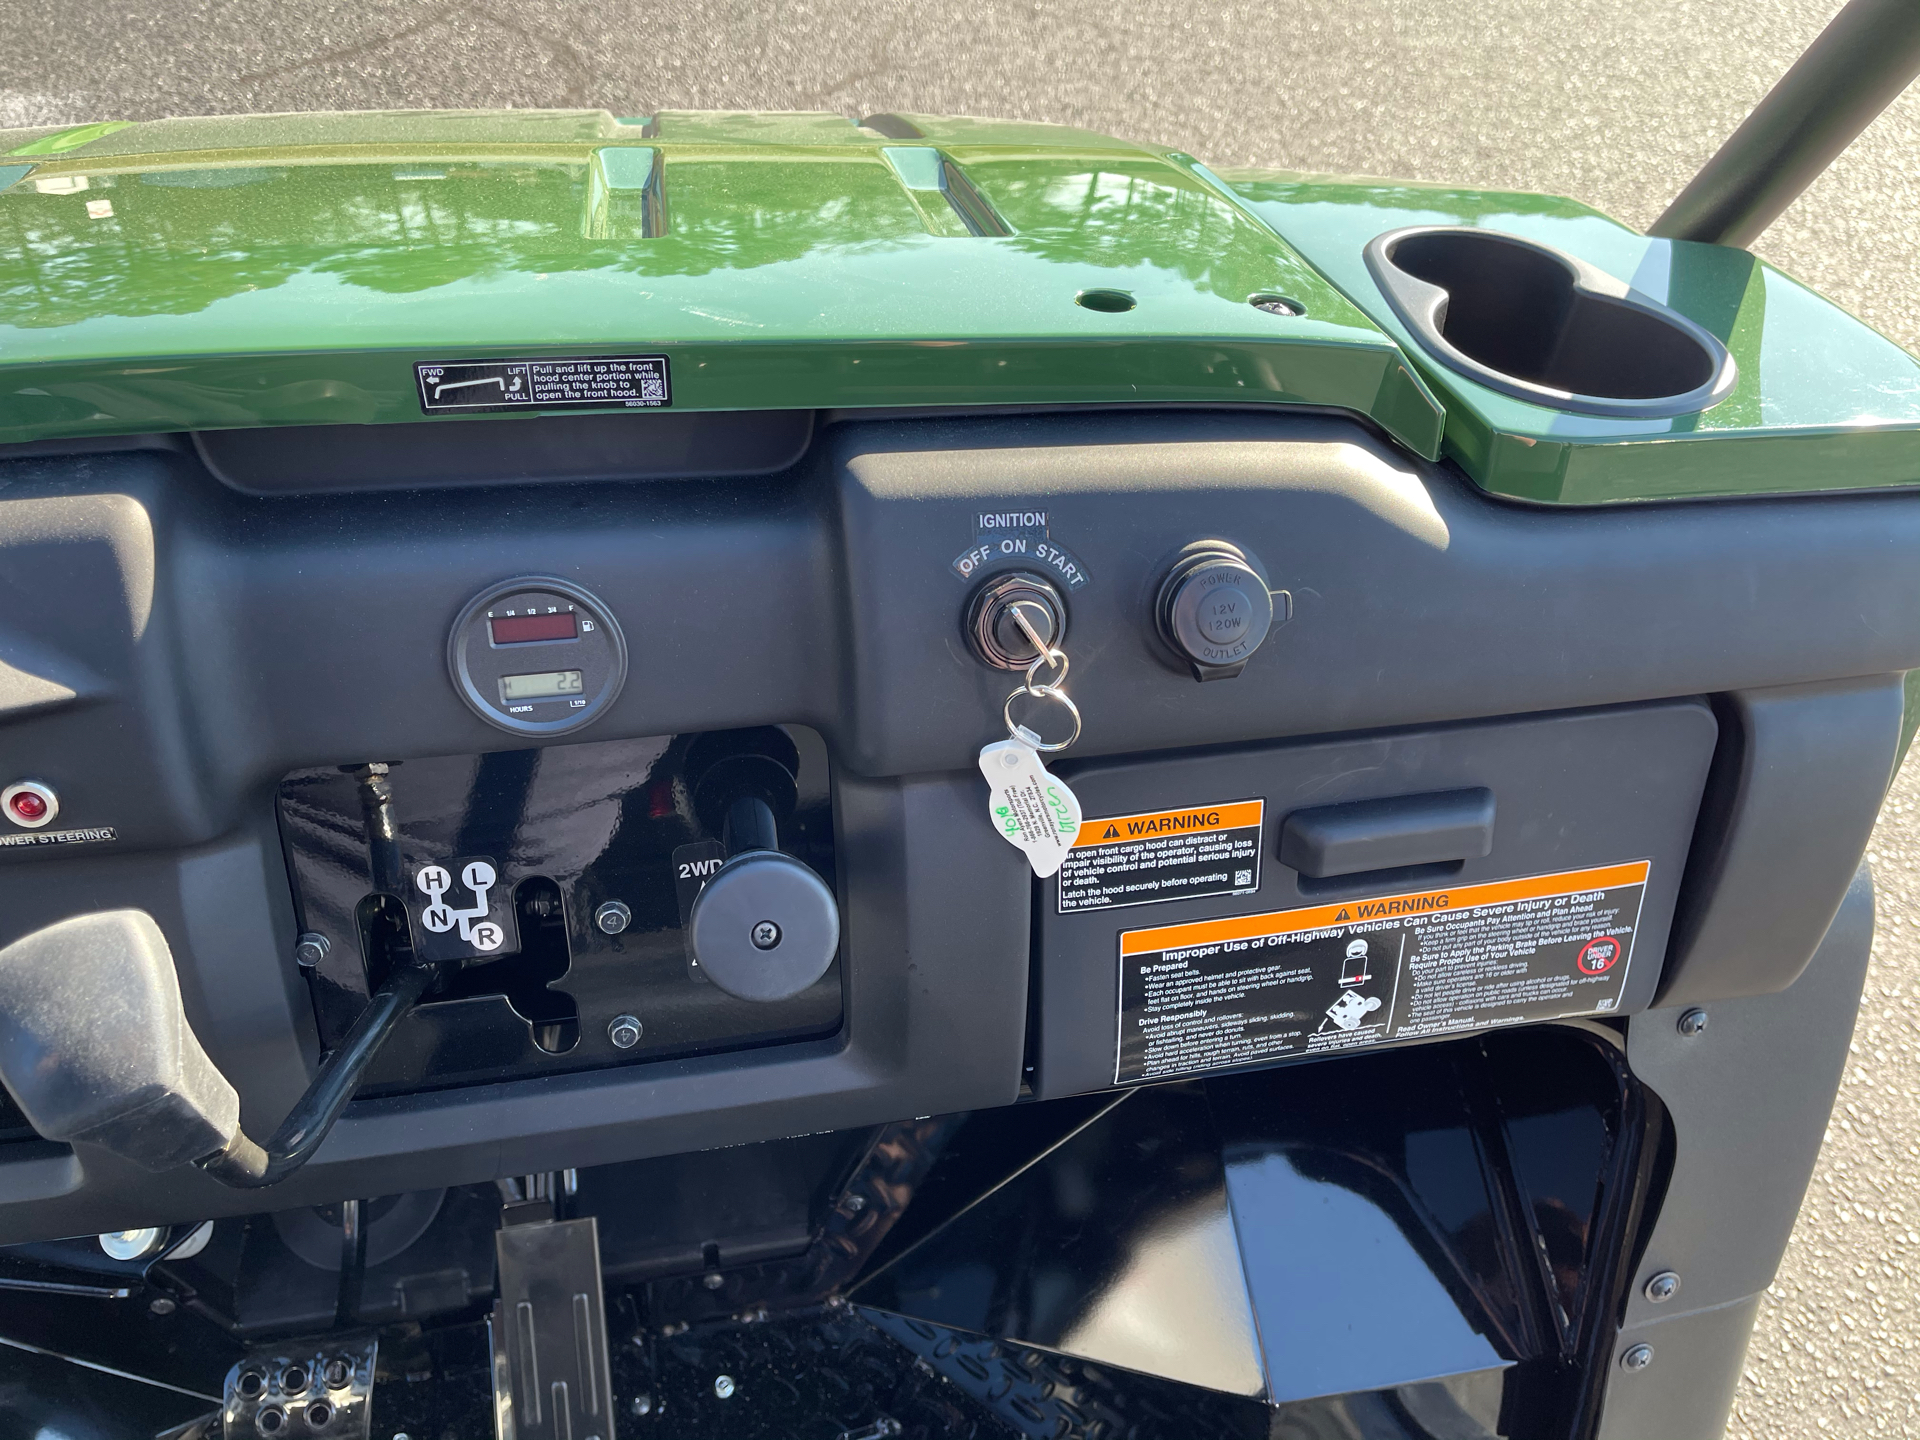 2021 Kawasaki Mule 4010 4x4 in Greenville, North Carolina - Photo 16